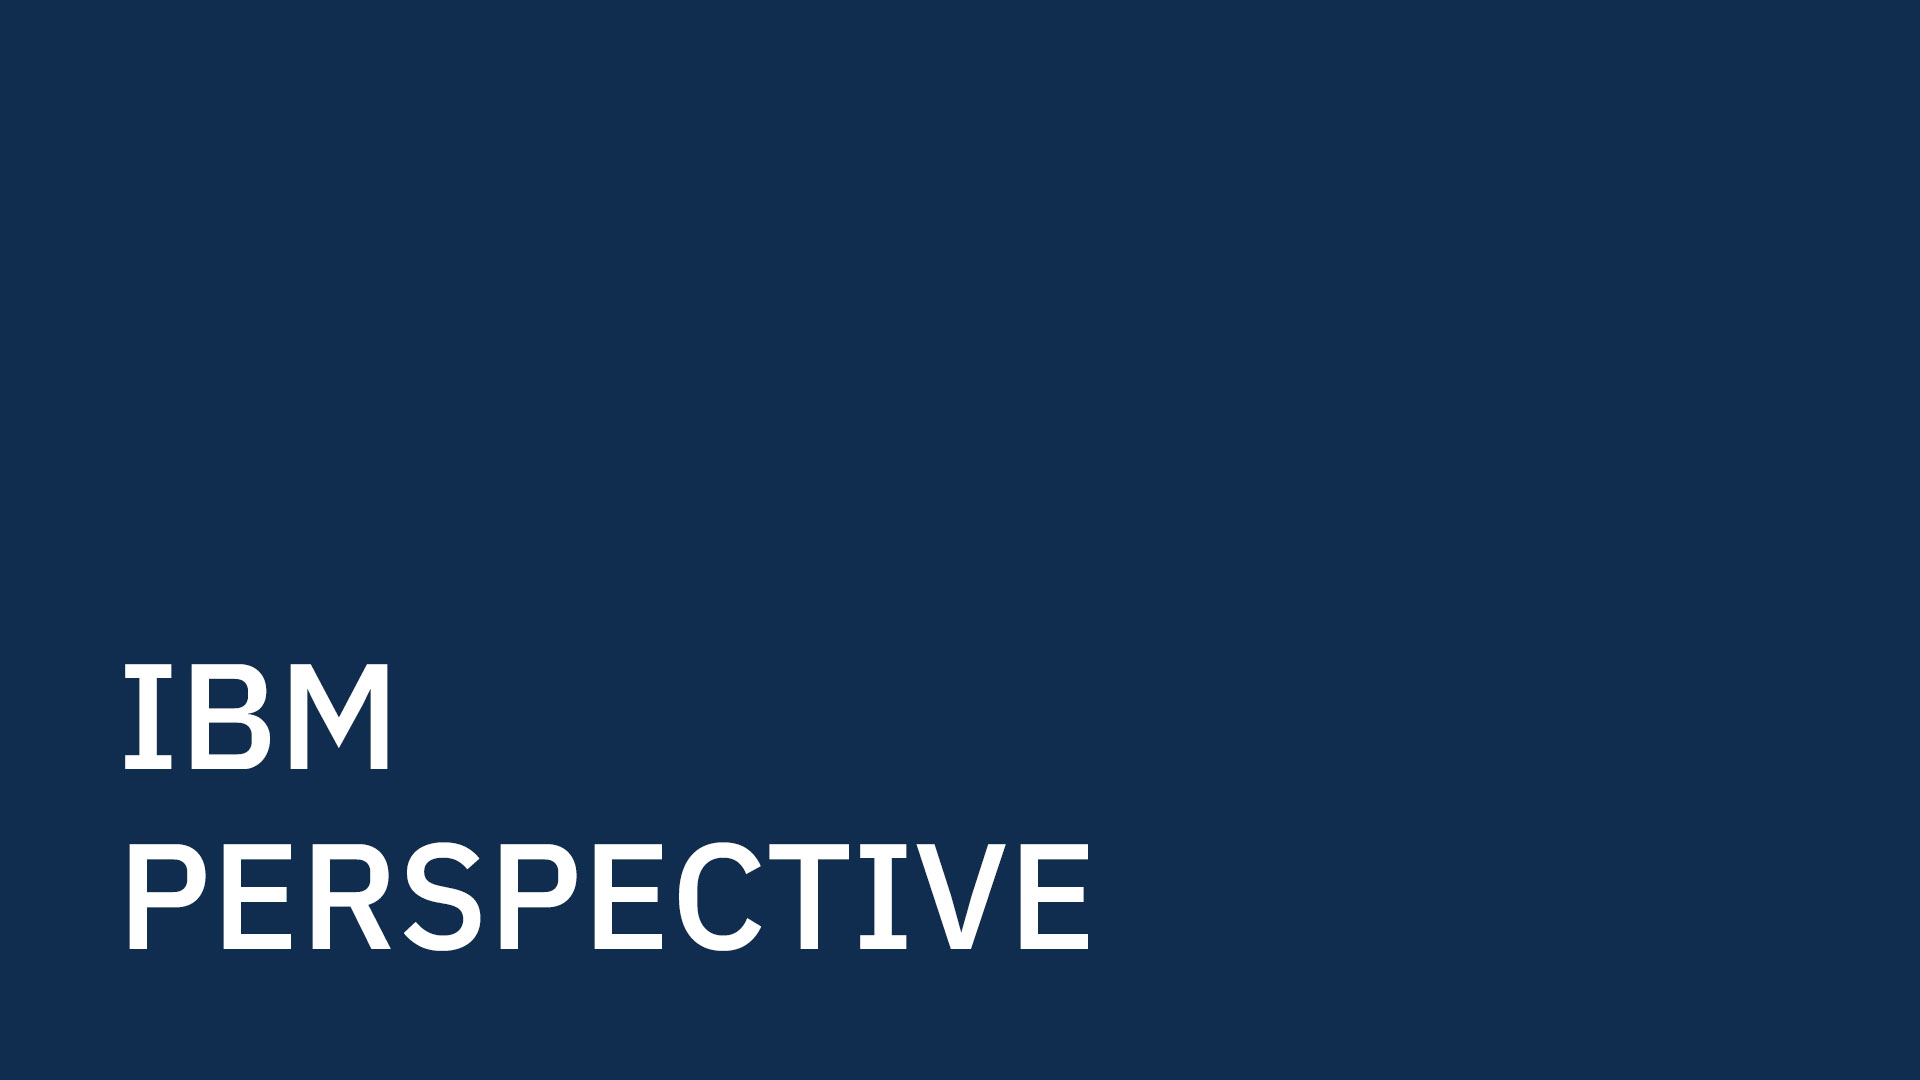 IBM Perspective in white text on a navy blue background.